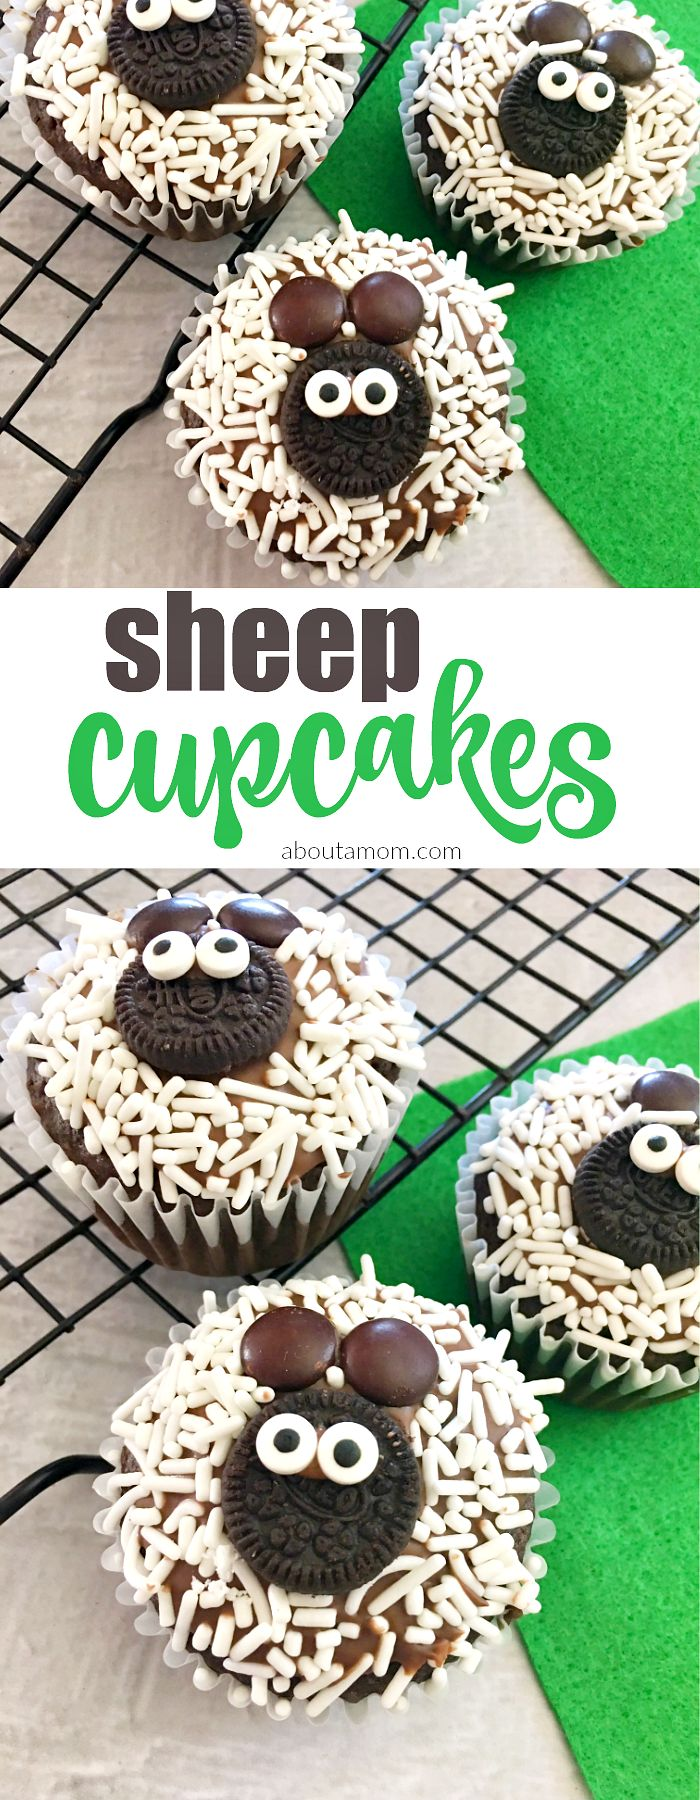 These simple-to-make sheep cupcakes are the perfect way to celebrate spring or Easter.